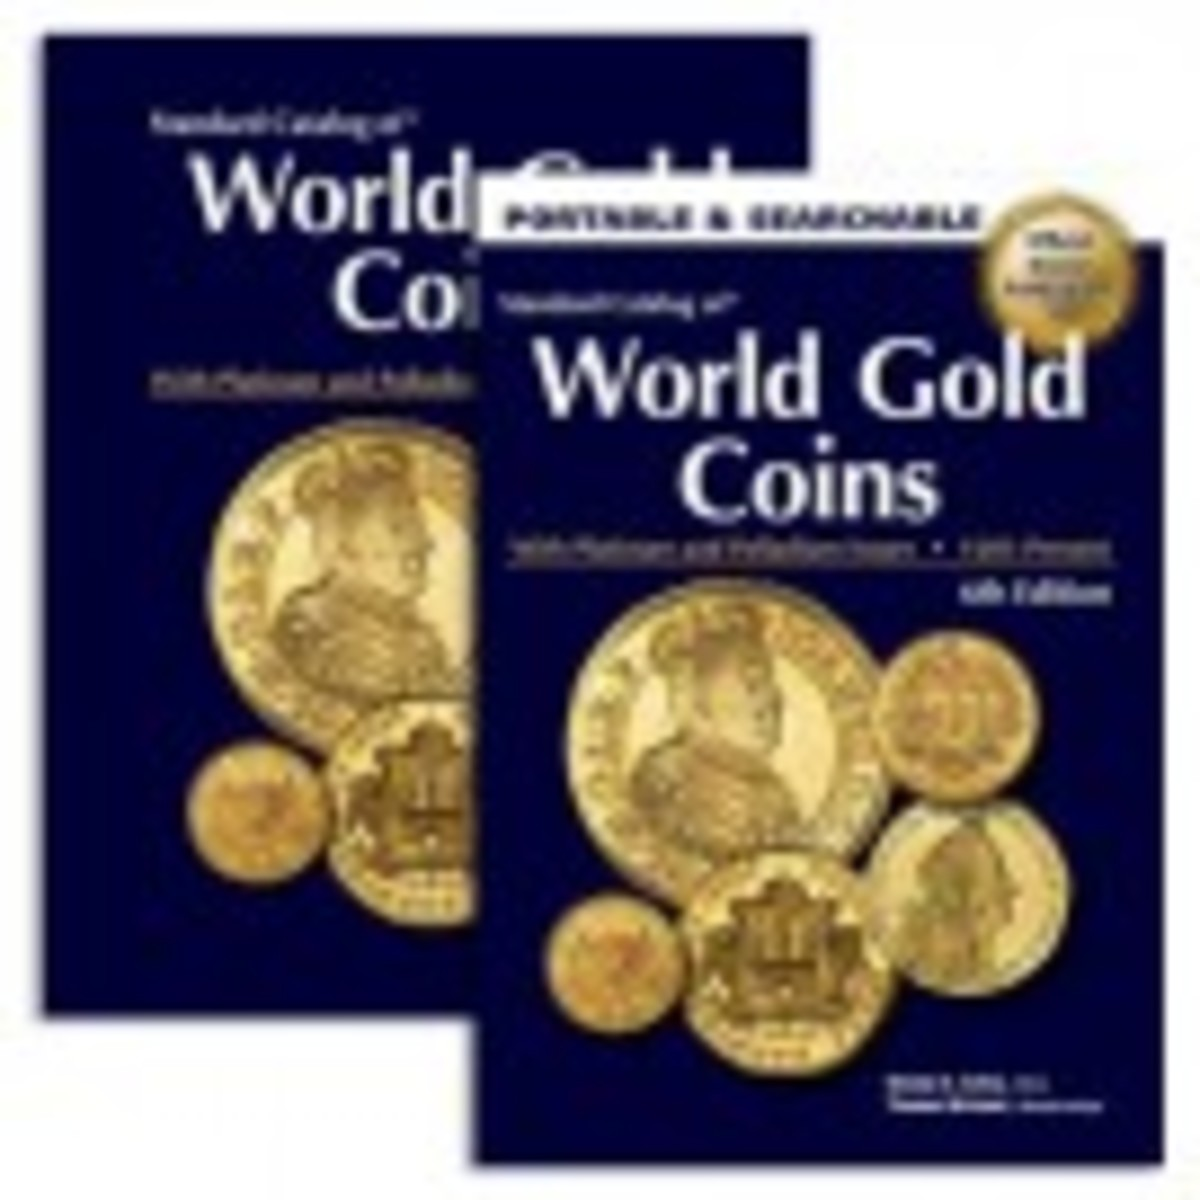 Covers more than 400 years of gold coins, from every region of the world!